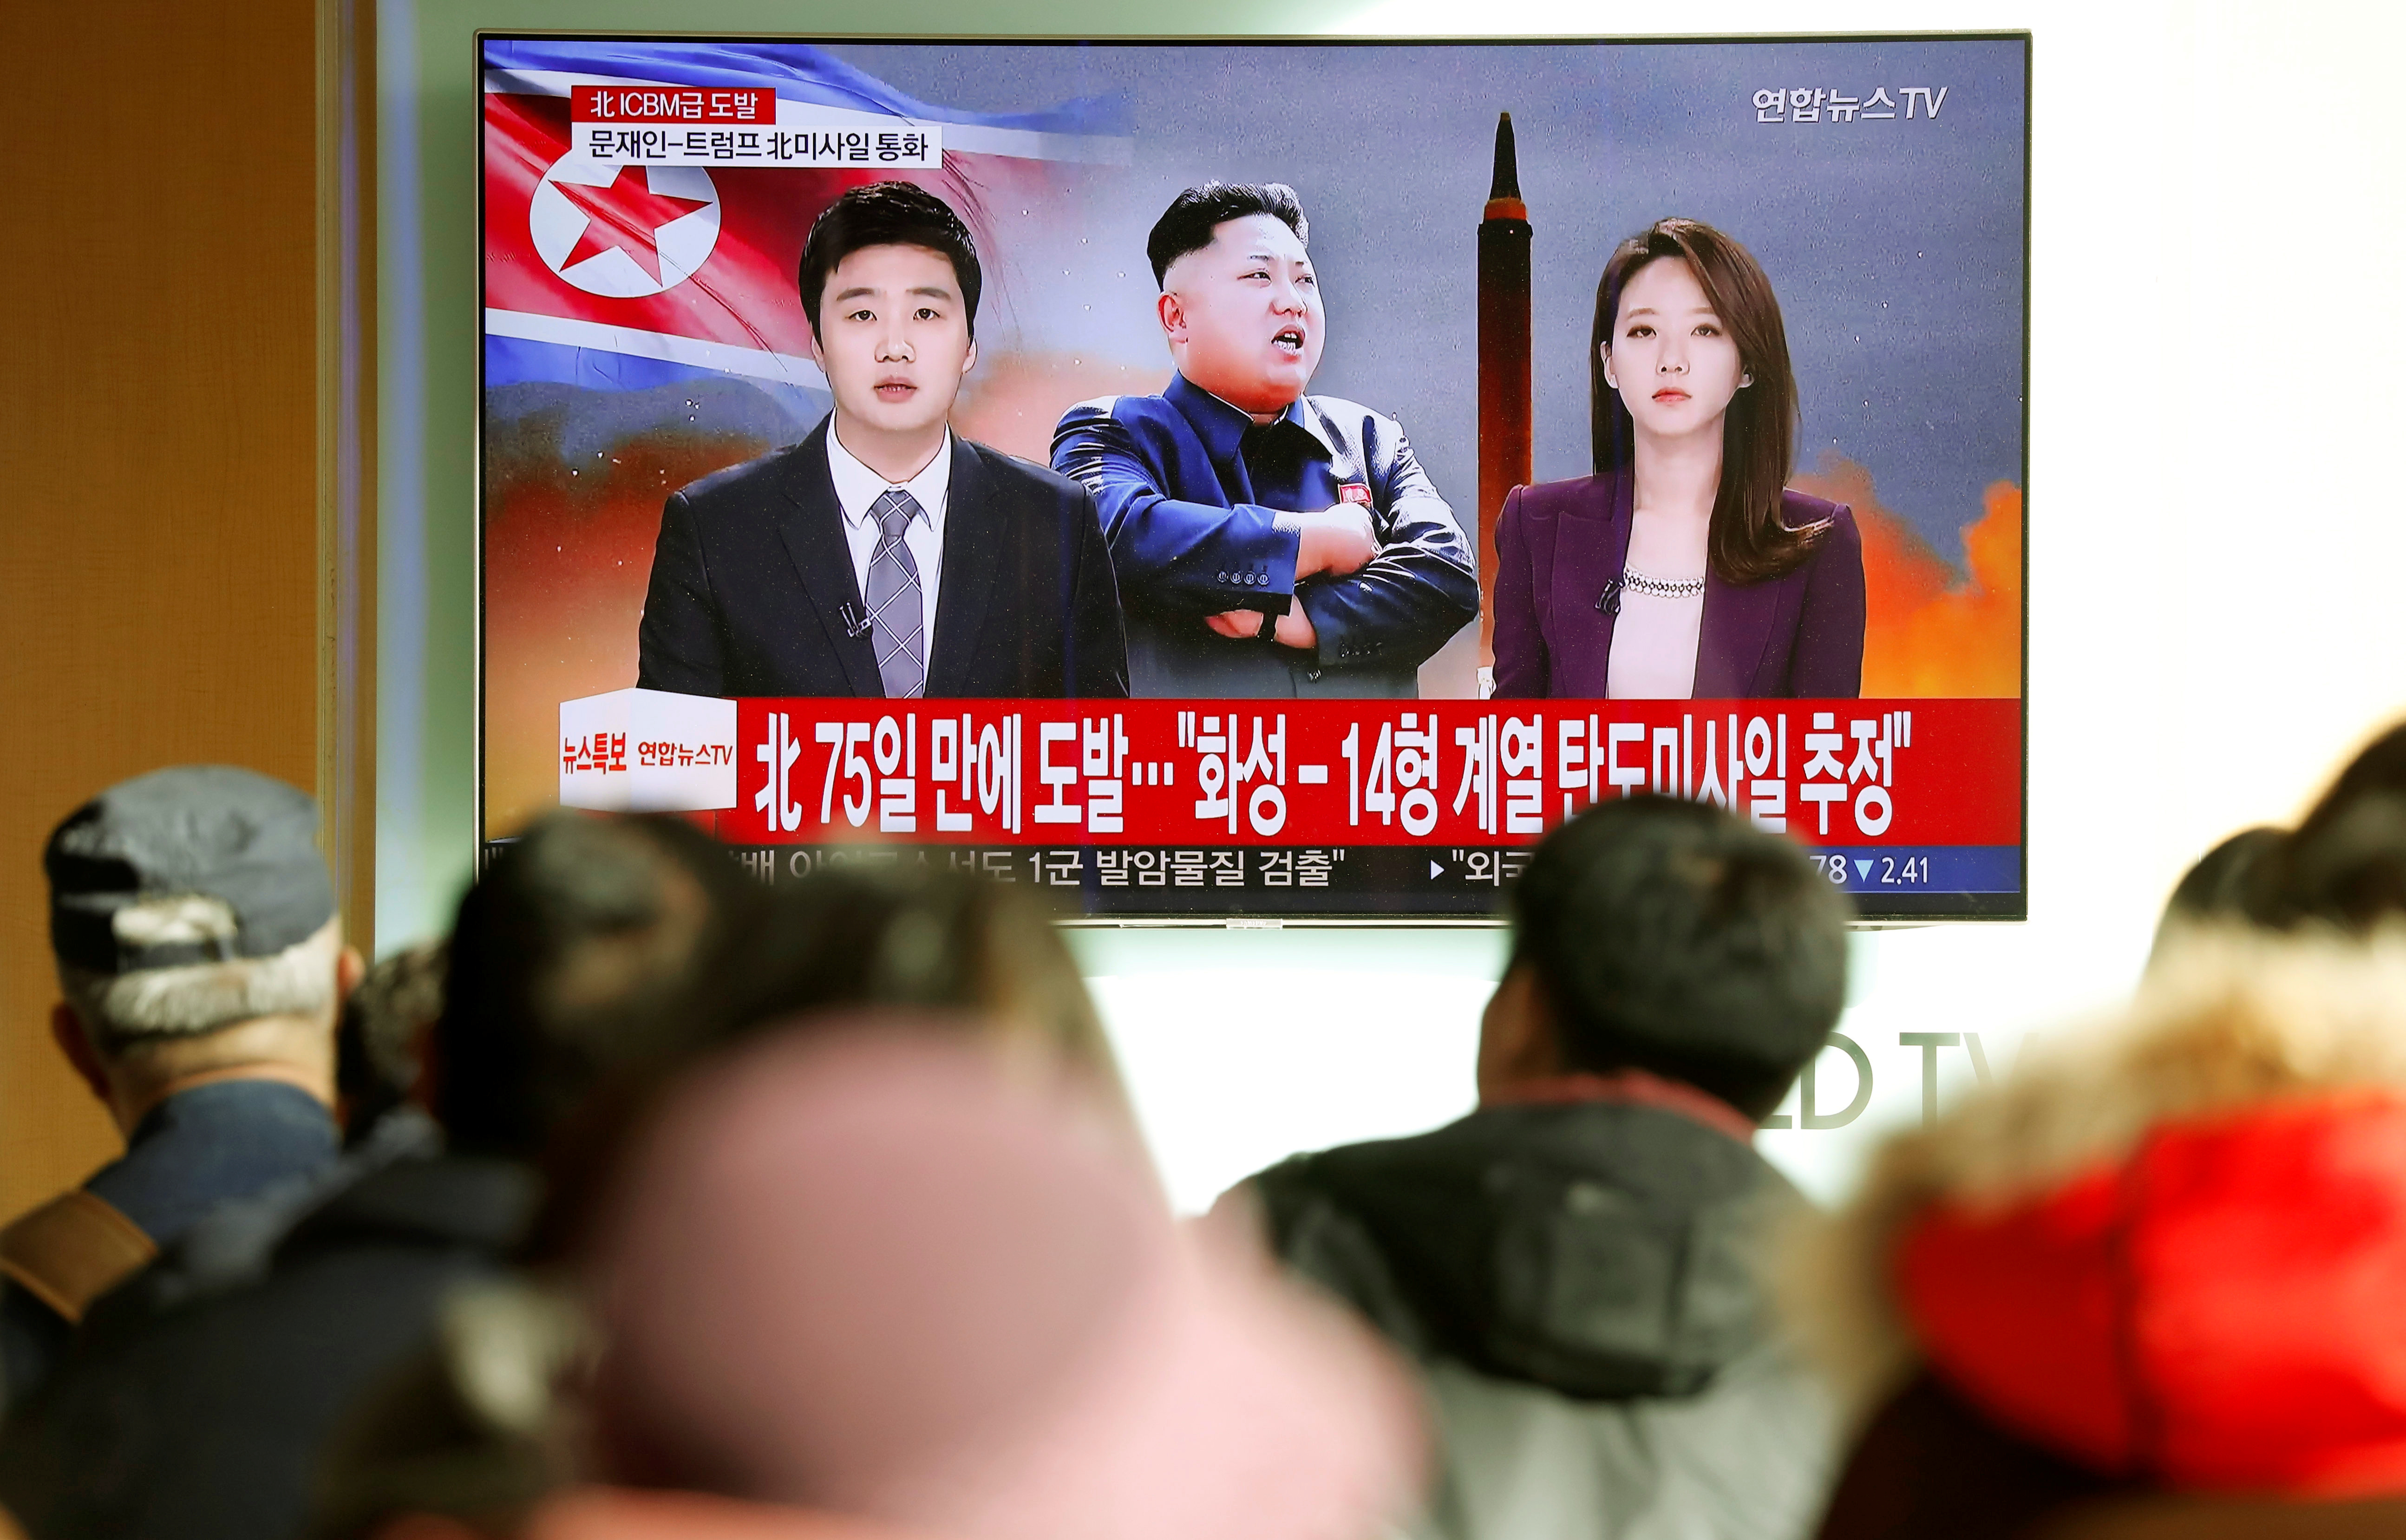 U.N. council to meet on North Korea rights abuses, nuclear program in December